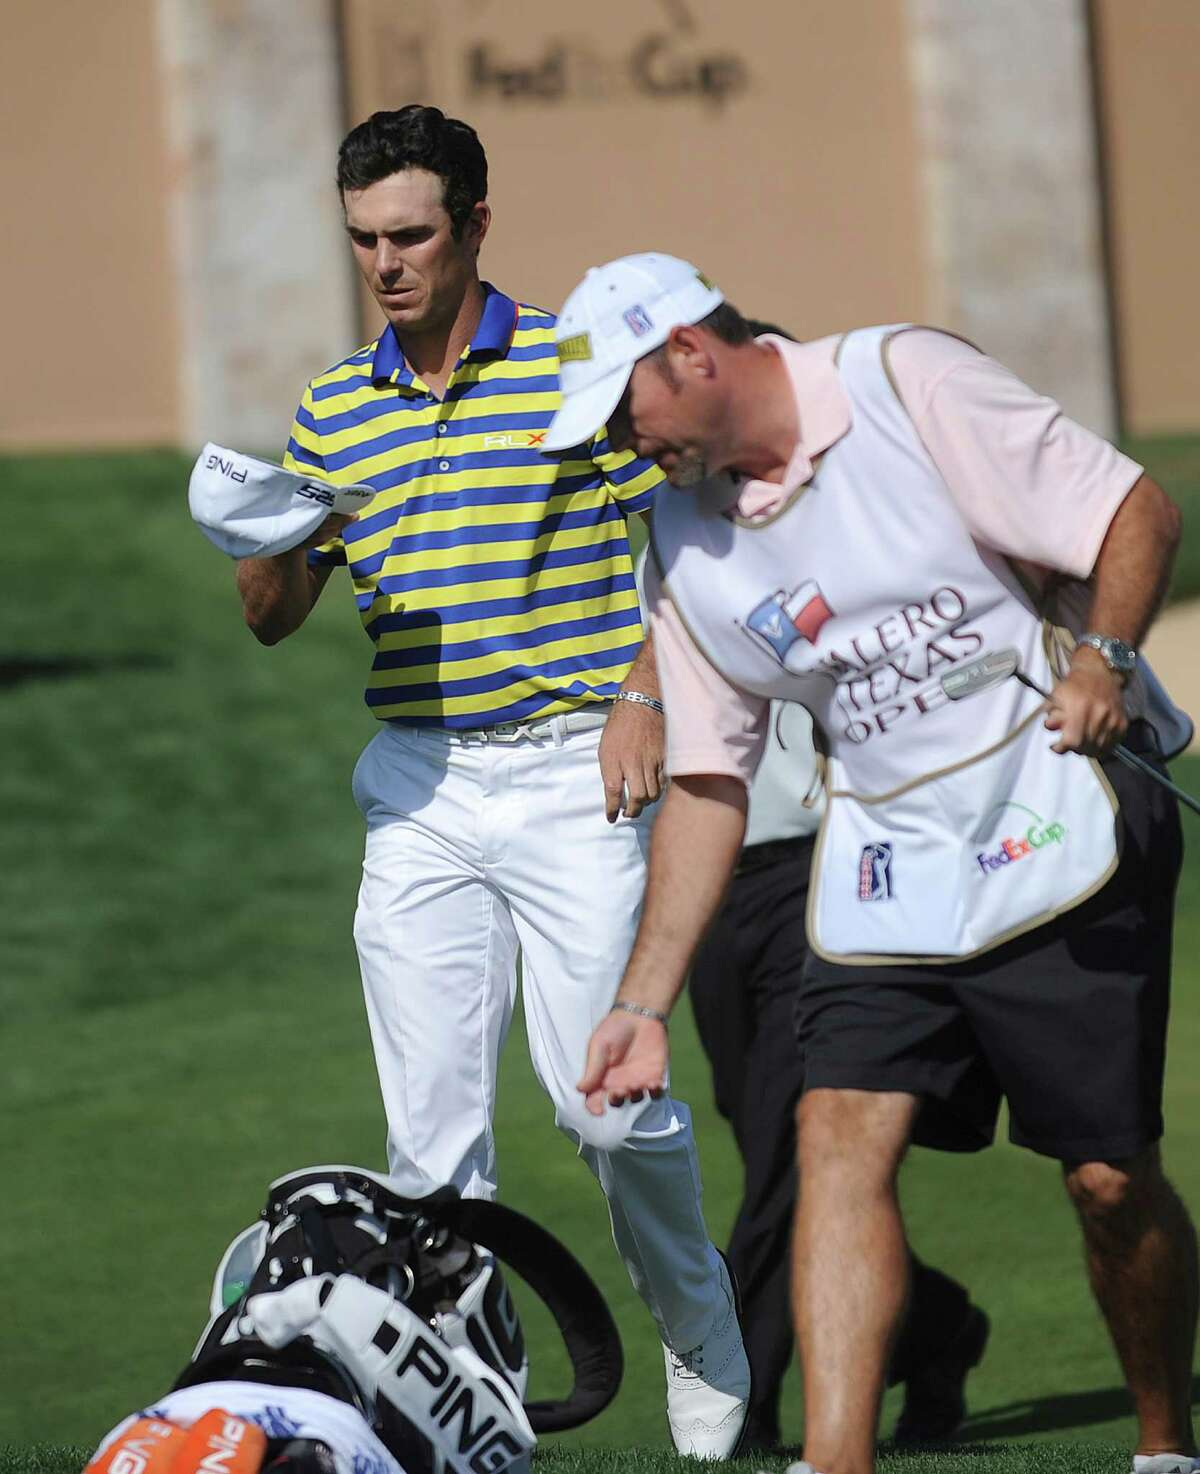 Billy Horschel leaves the course after going to 10 under par after three rounds of the Valero Texas Open at TPC San Antonio's AT&T Oaks Course on Saturday, April 6, 2013.